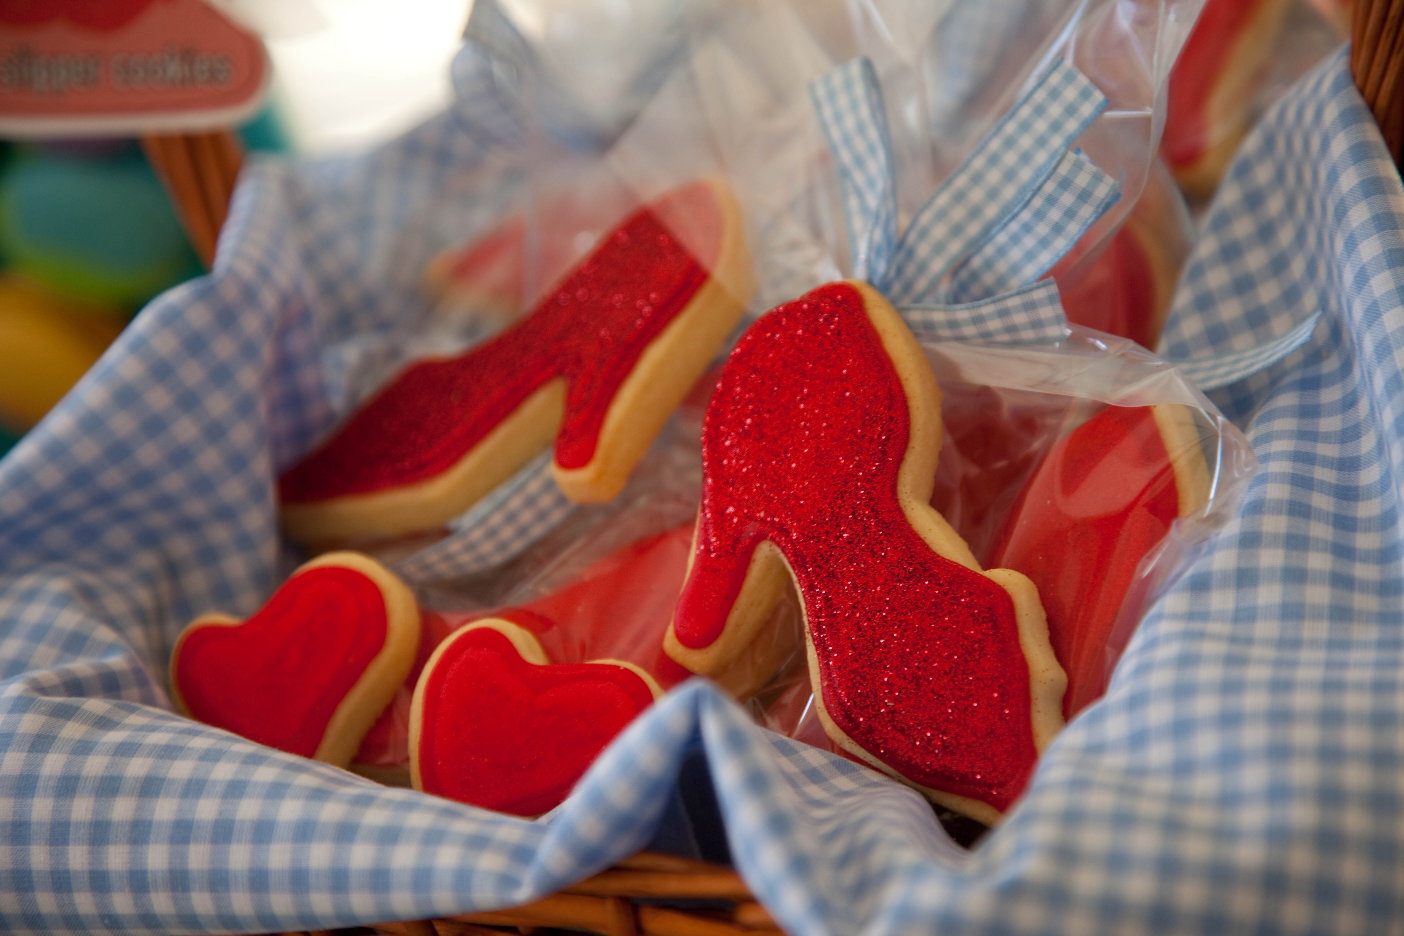 Rainbow coloured popcornWizard Of Oz Ruby Slippers Under House